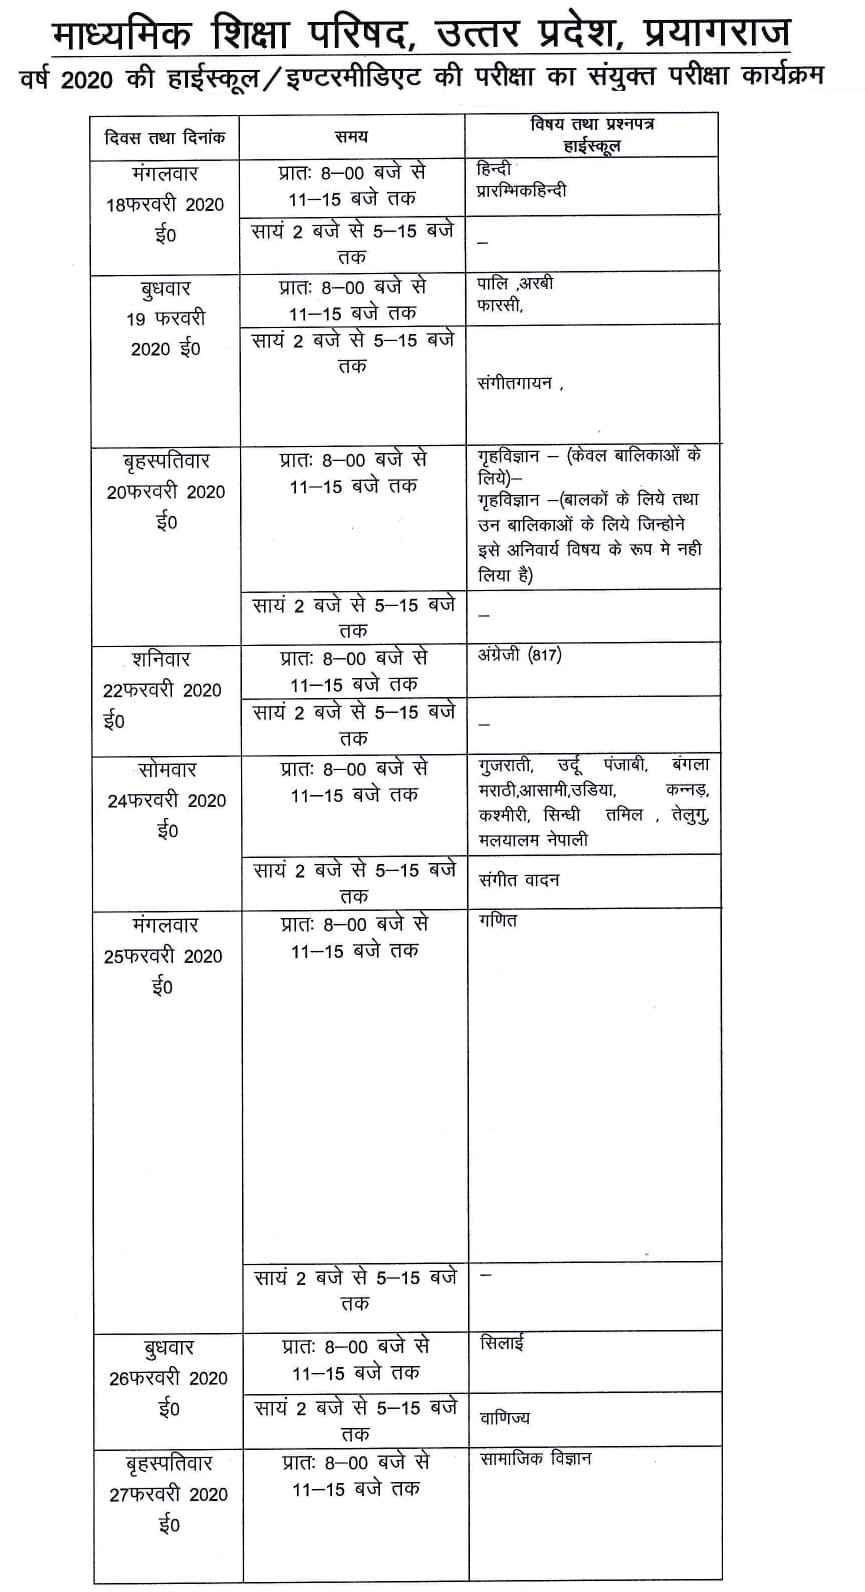 UP Board Time Table 2020 (High School) 10th